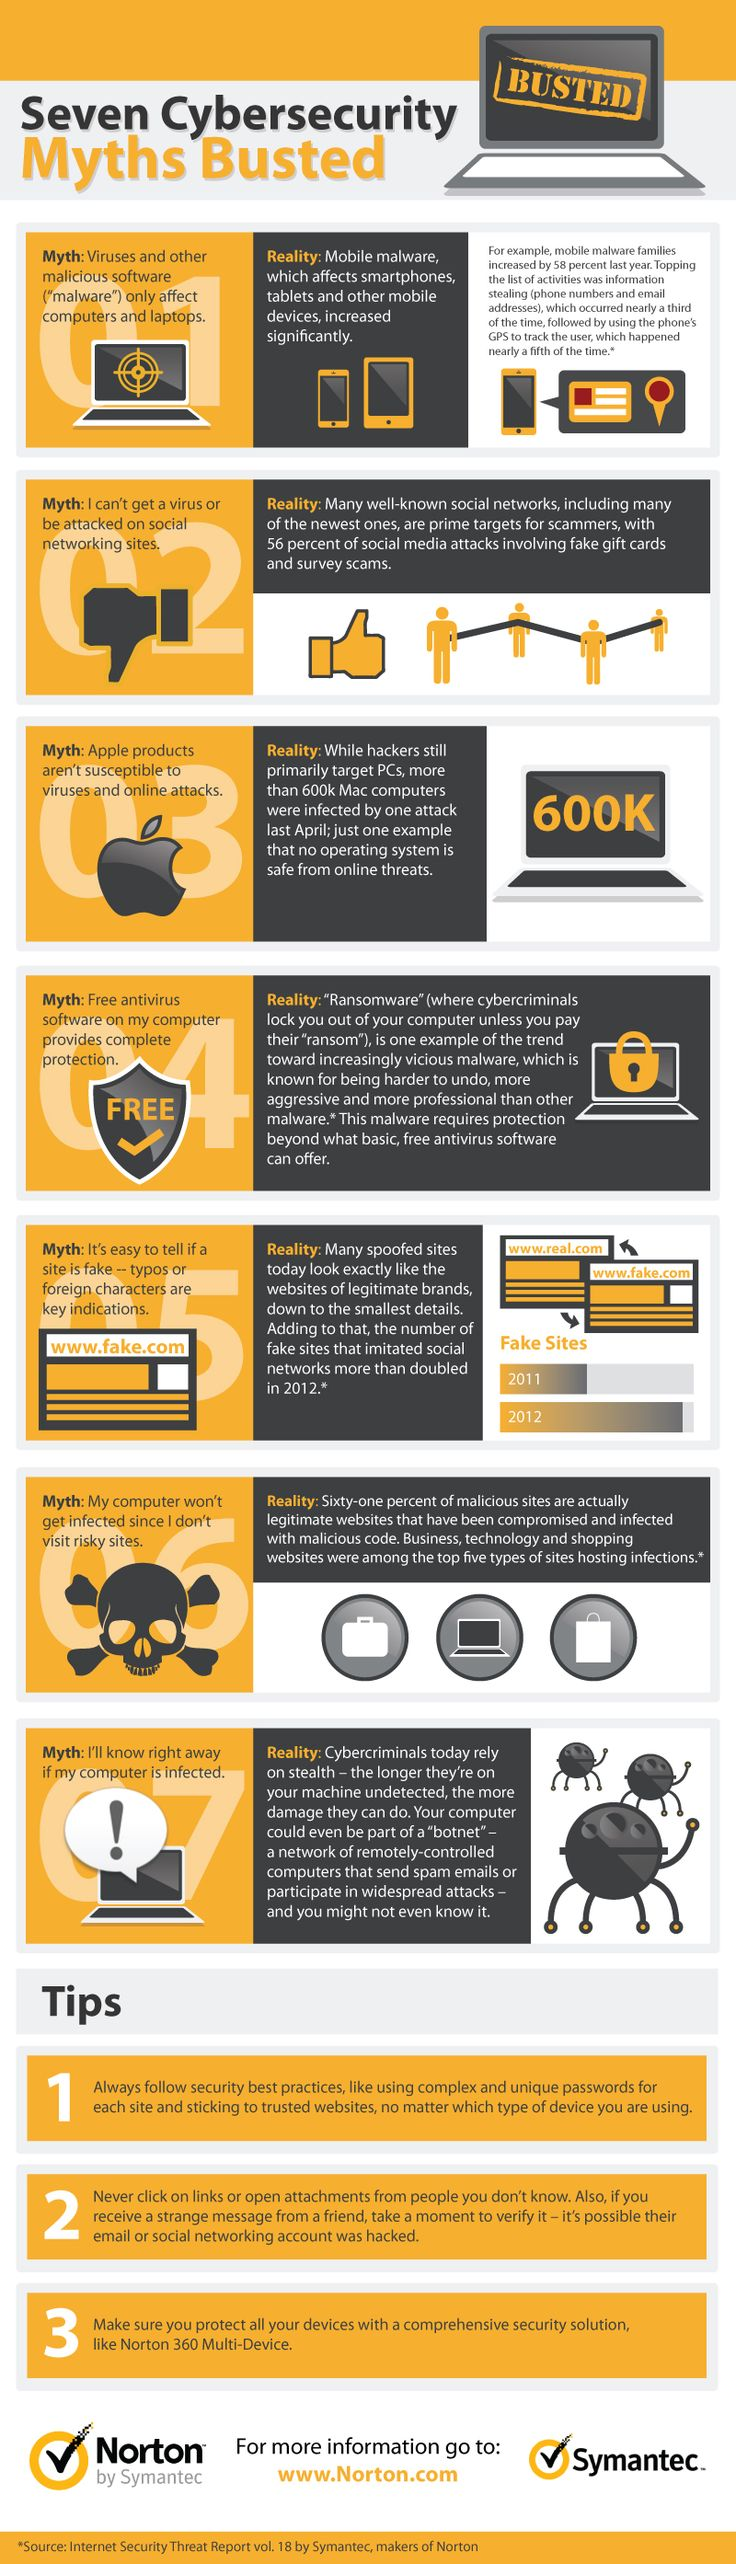 Seven cyber security myths busted